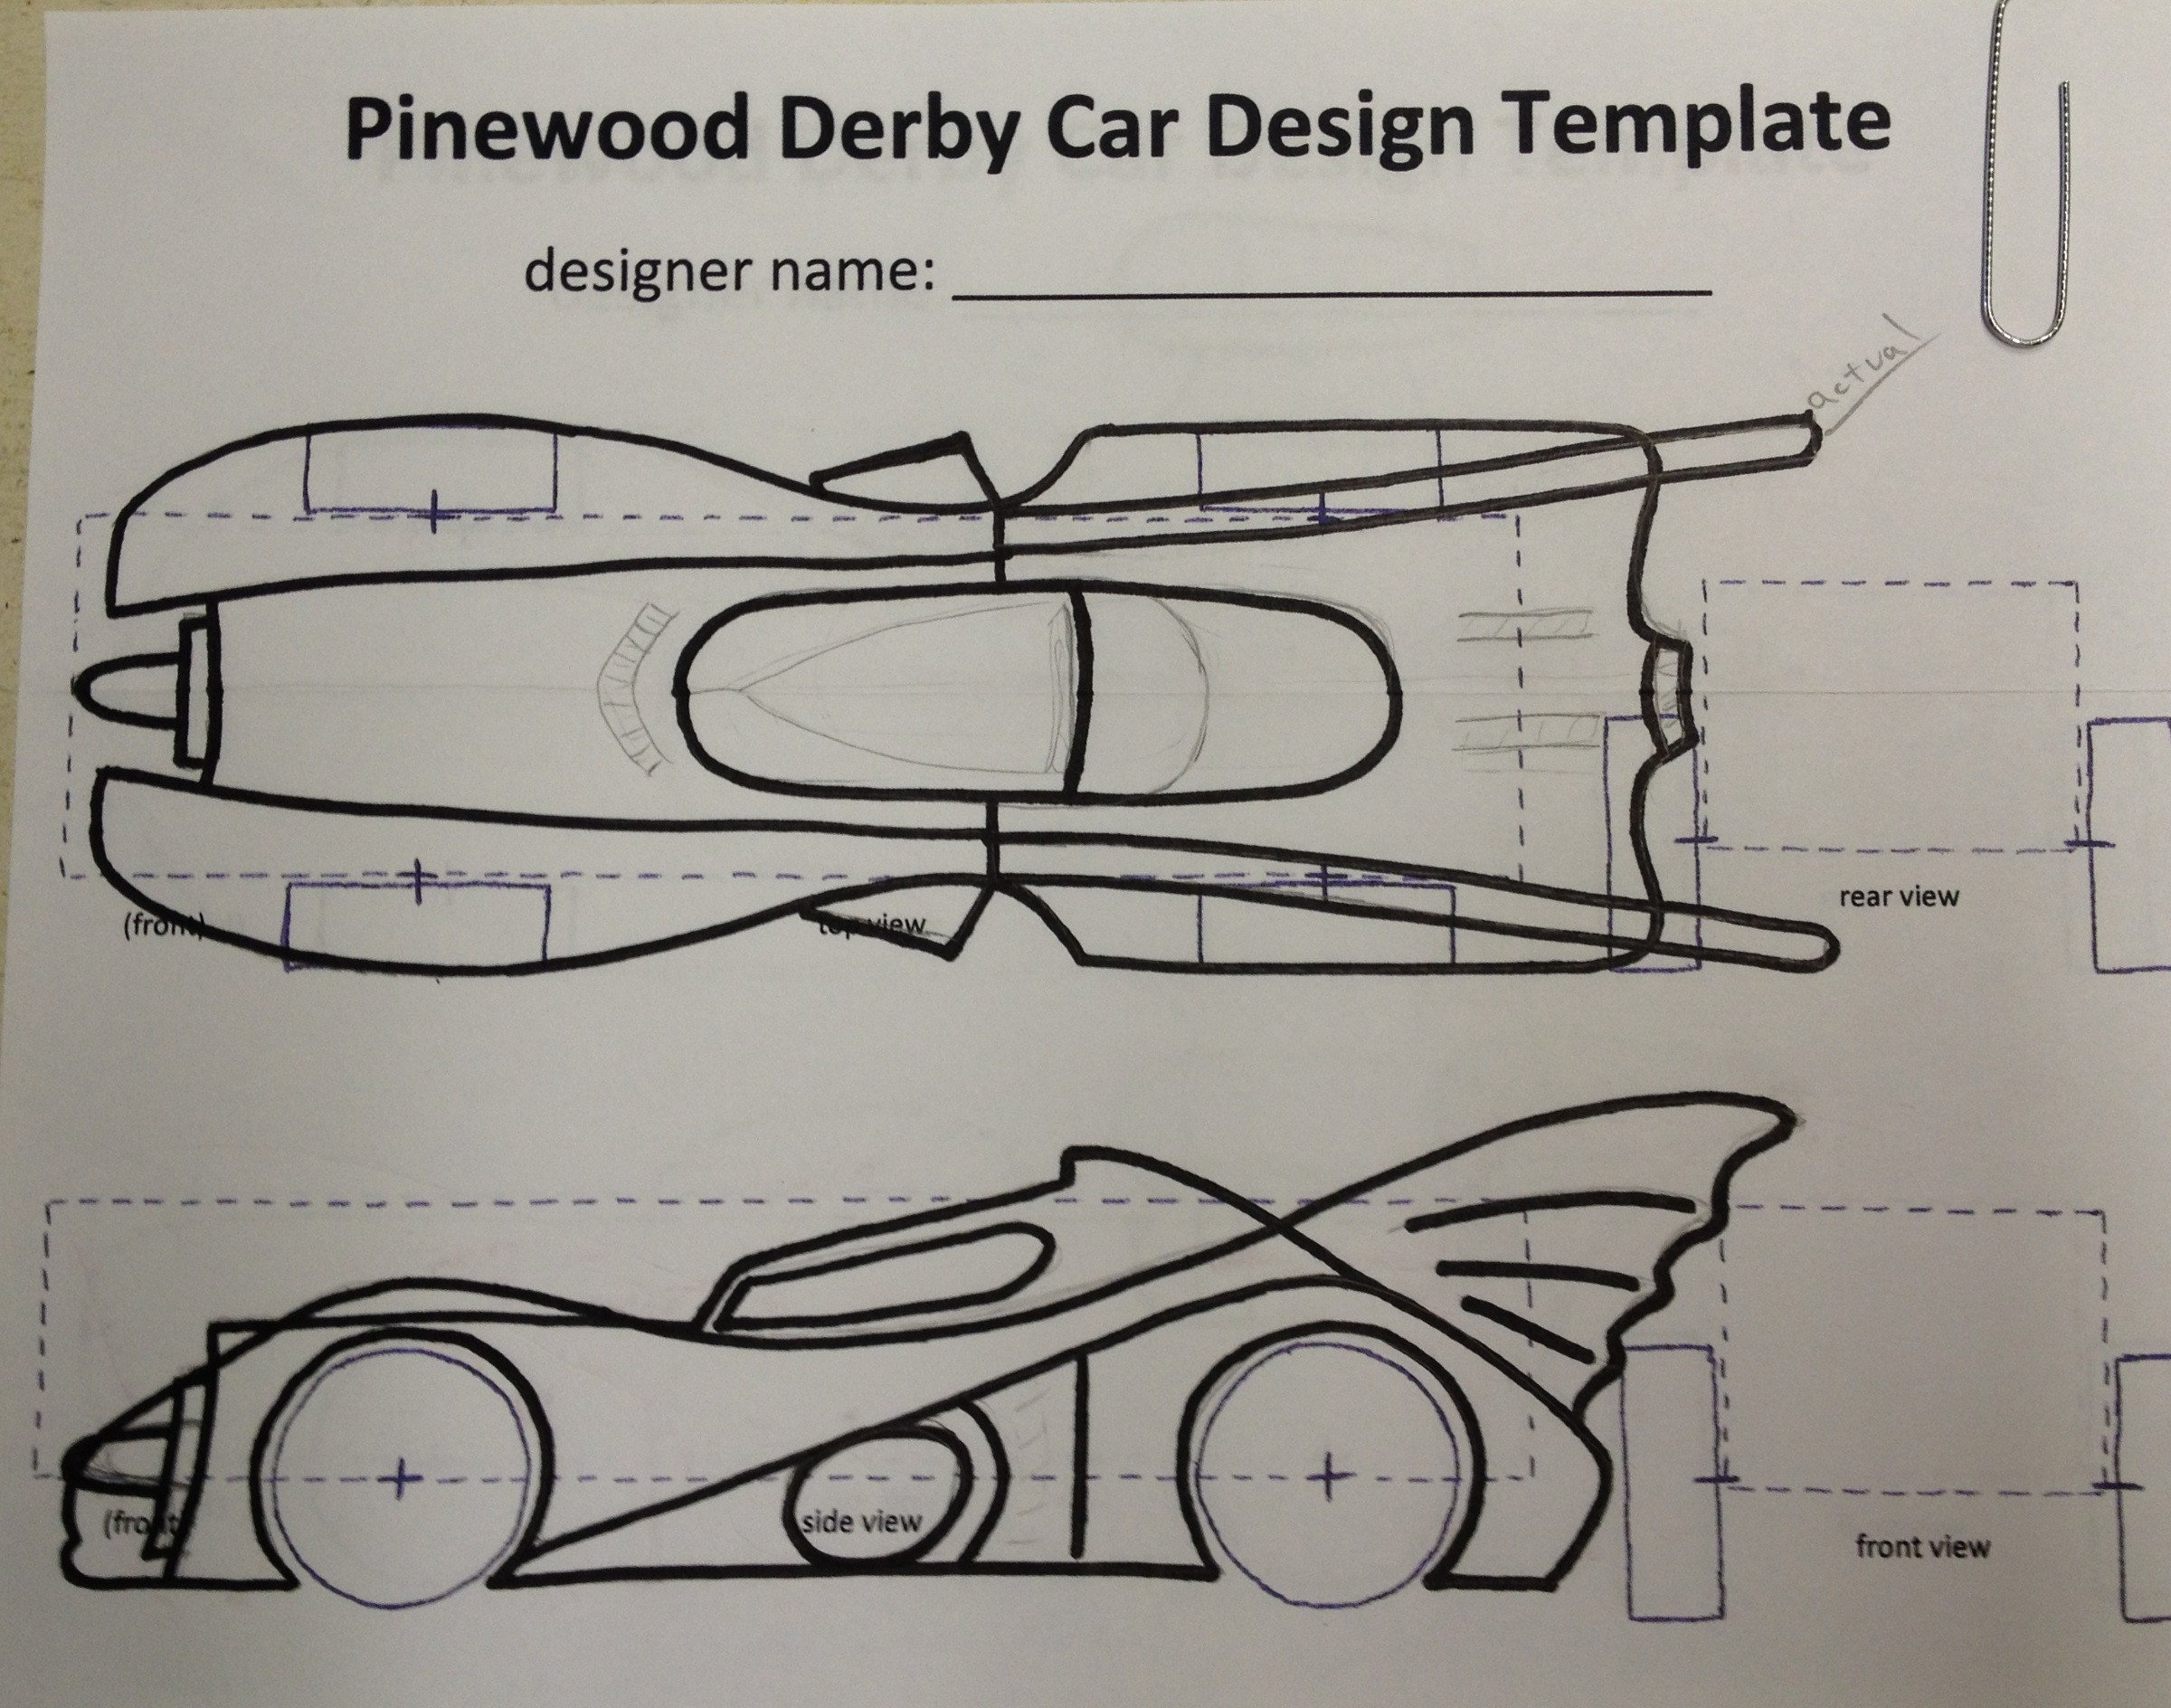 Pinewood Derby Car Design Template How to Build An Awesome Batmobile Pinewood Derby Car